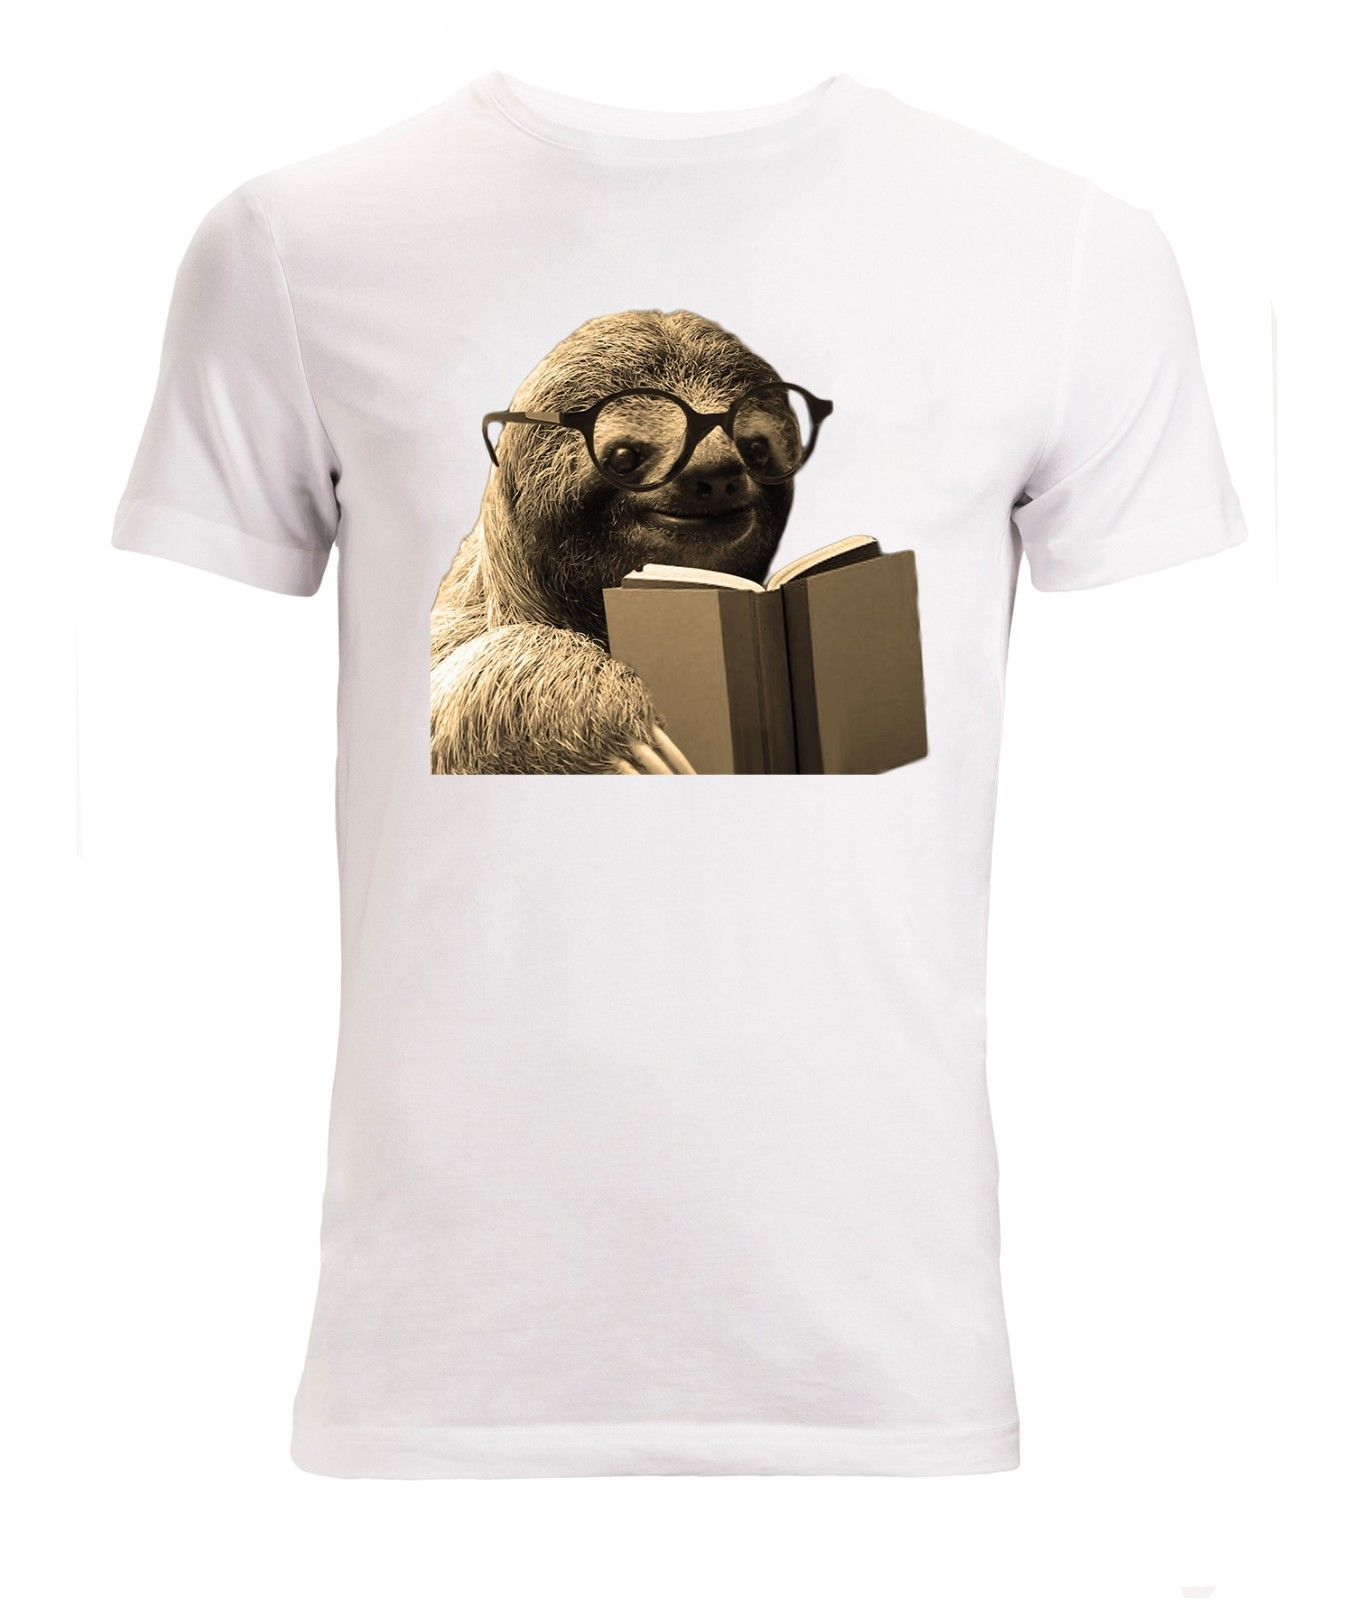 Sloth Reading A Book Wearing Glasses Men ('s Available) T Shirt White Top Cool Xxxtentacion Tshirt Cool Xxxtentacion Tshirt